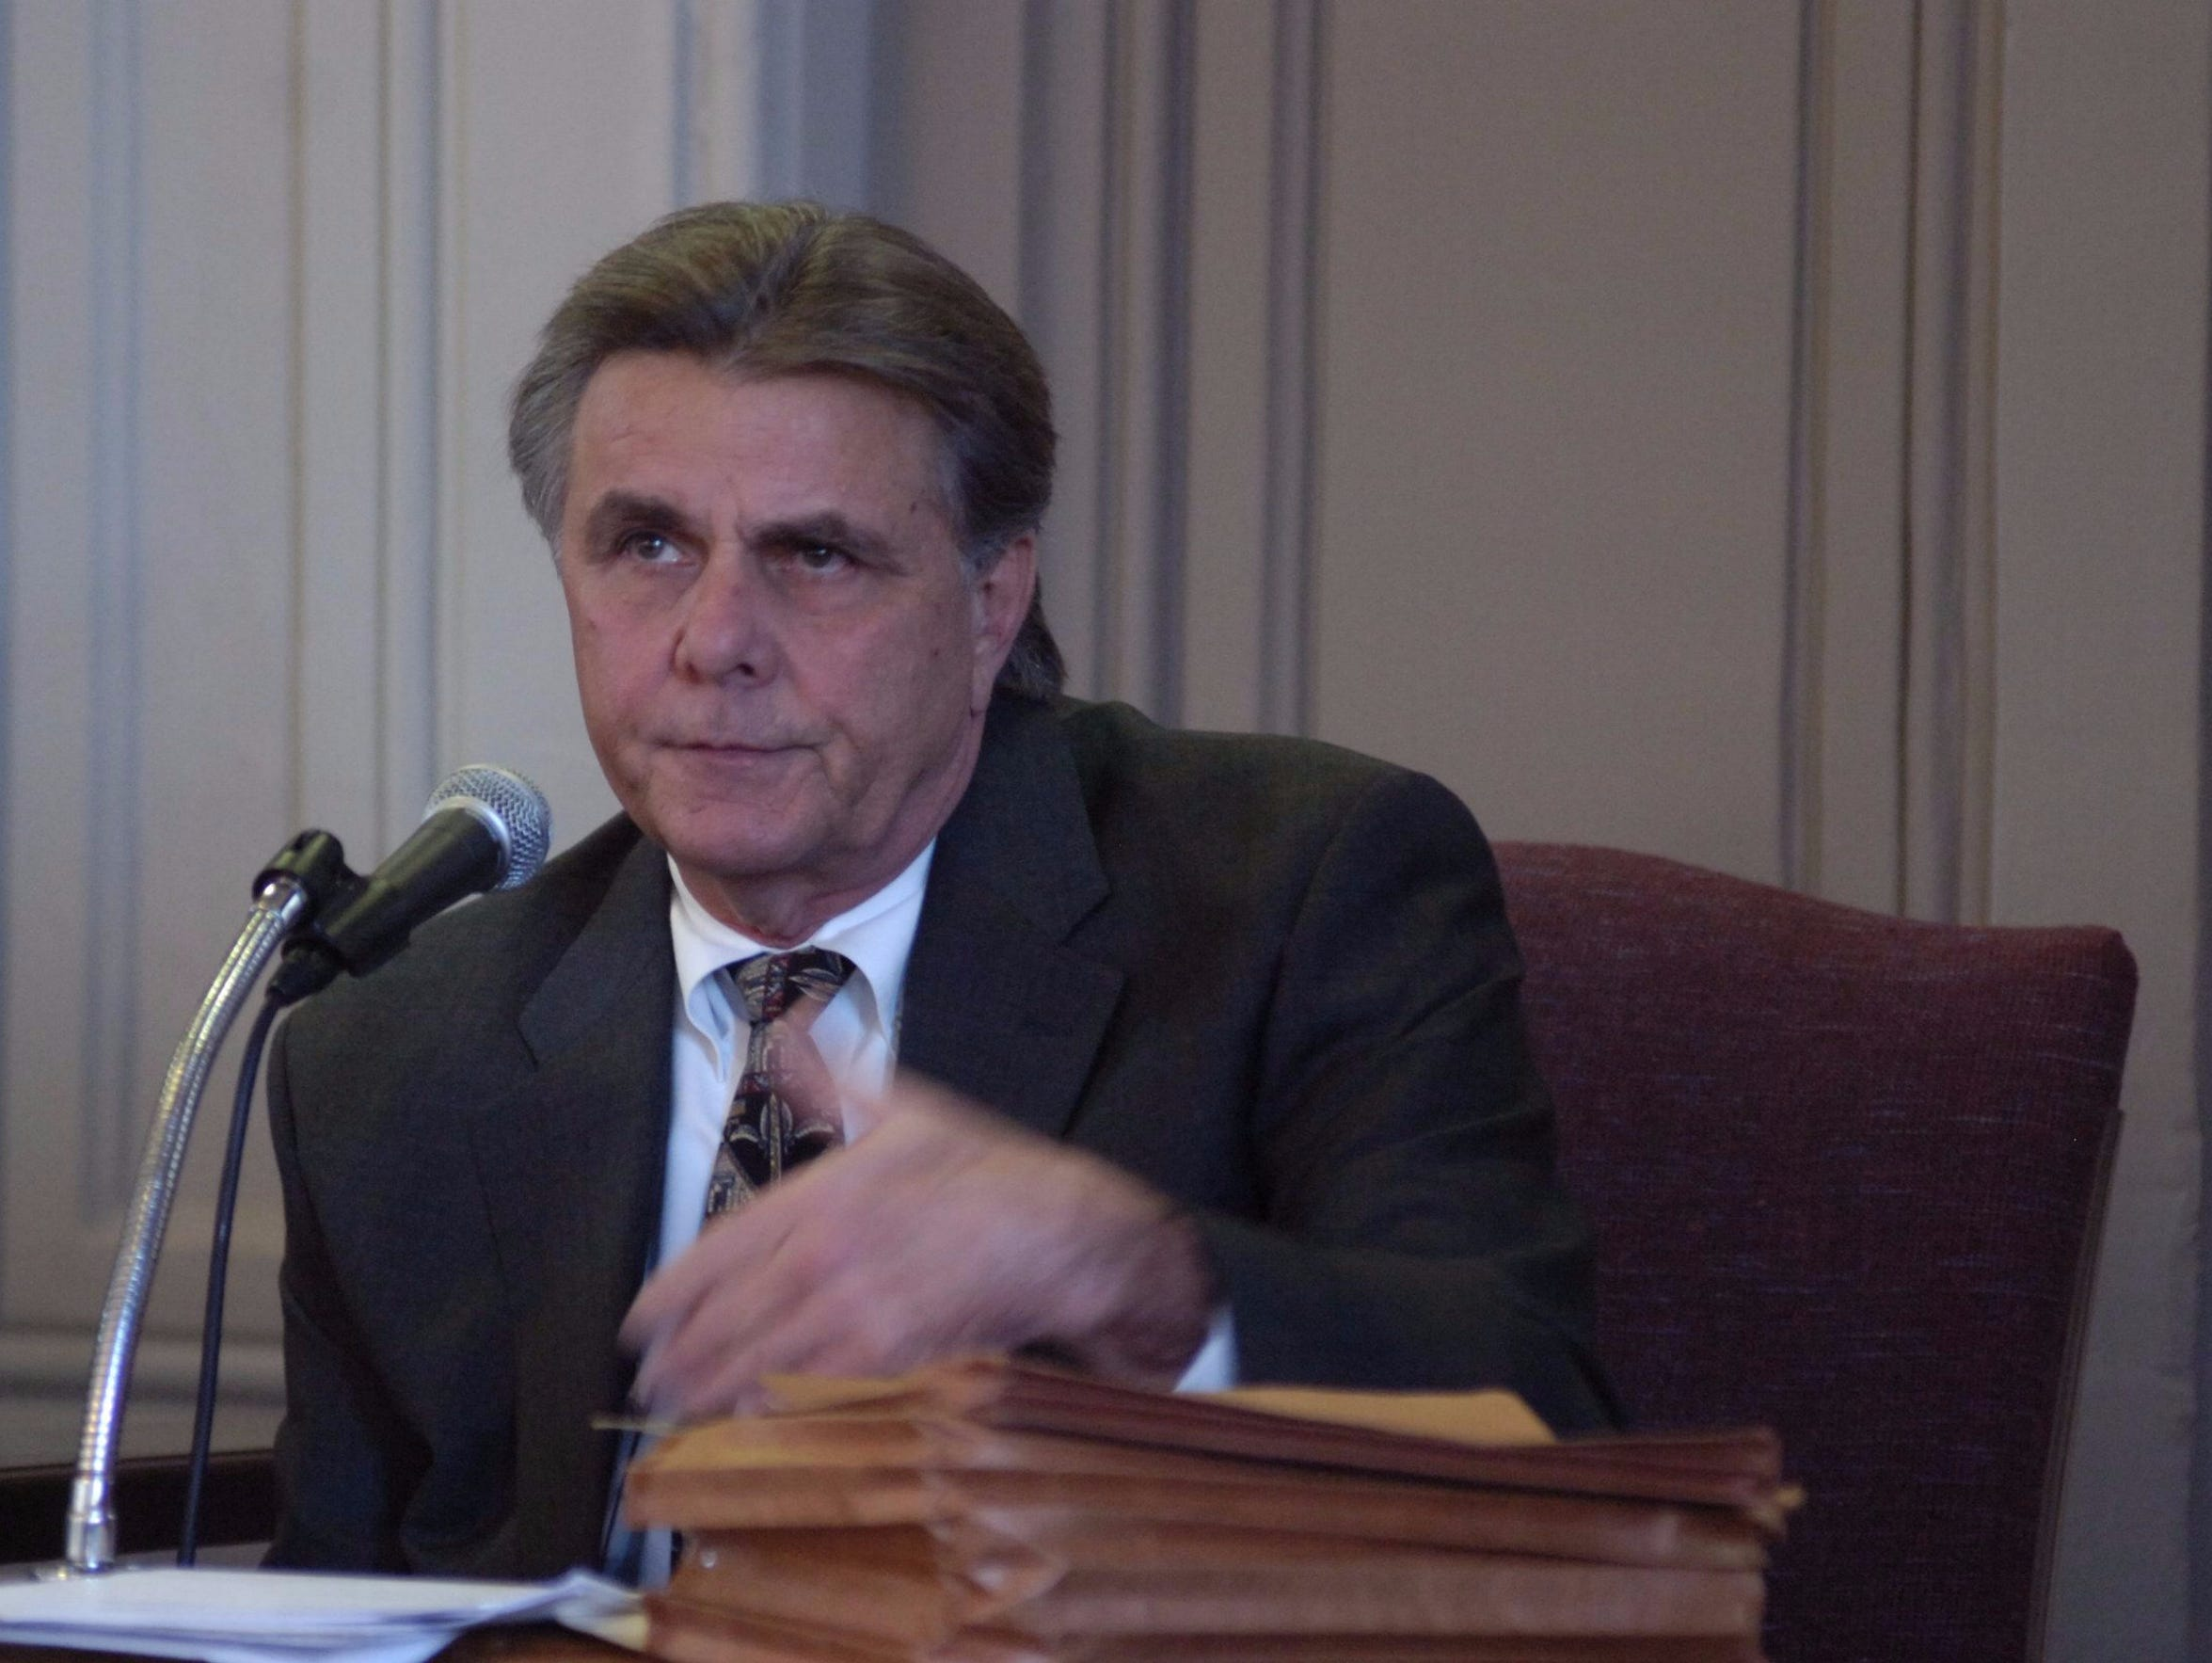 Forensic psychologist Dr. Dennis Eshbaugh testifies